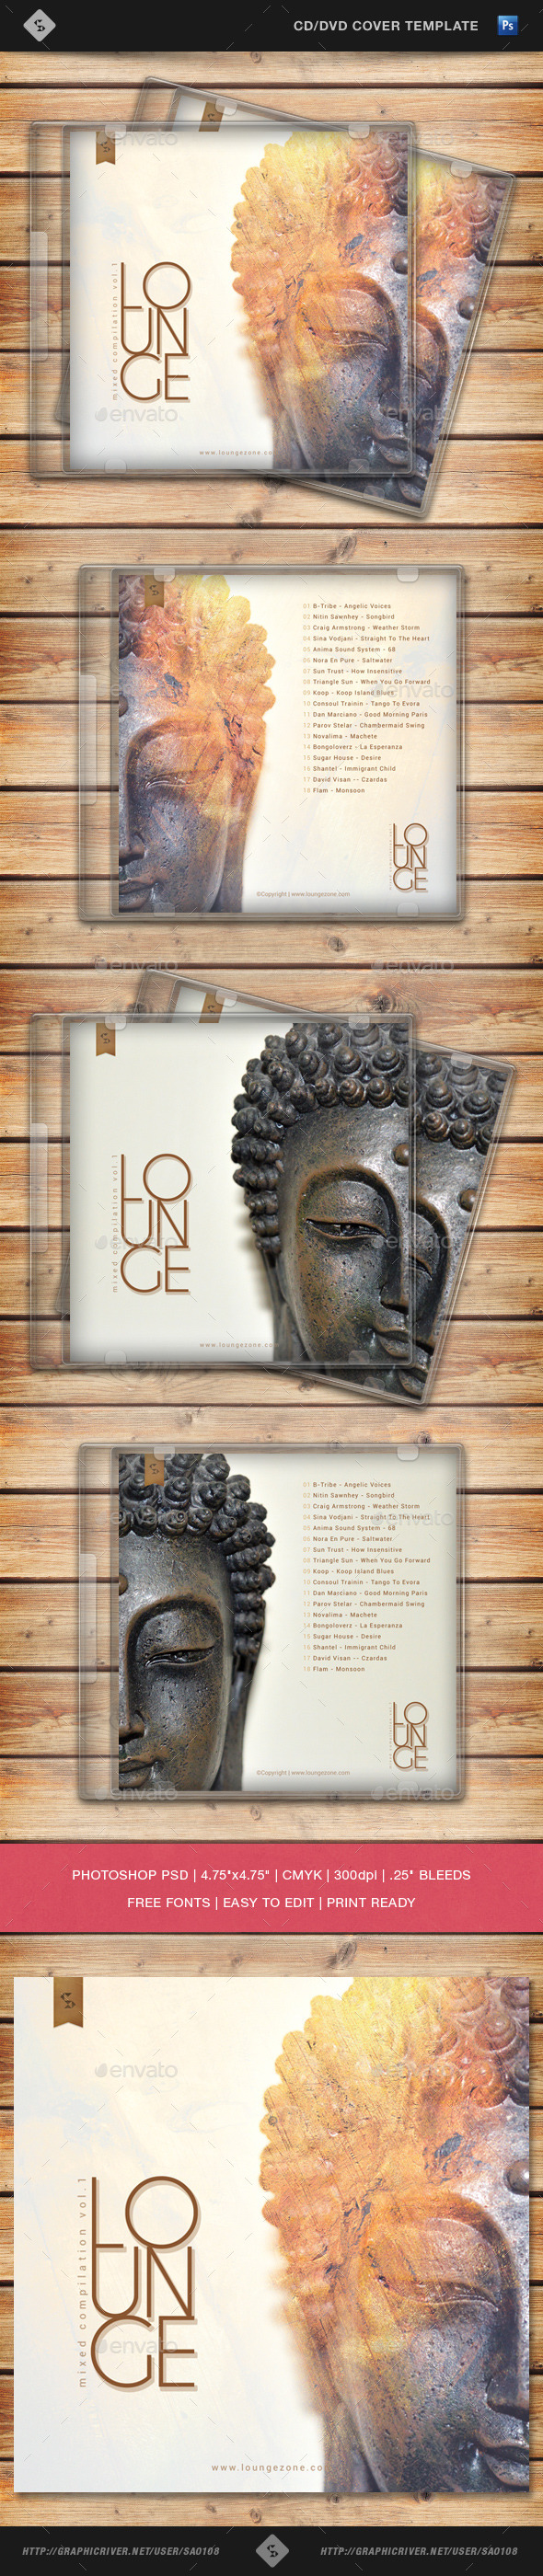 GraphicRiver Lounge Music Compilation CD Cover Template 10717809